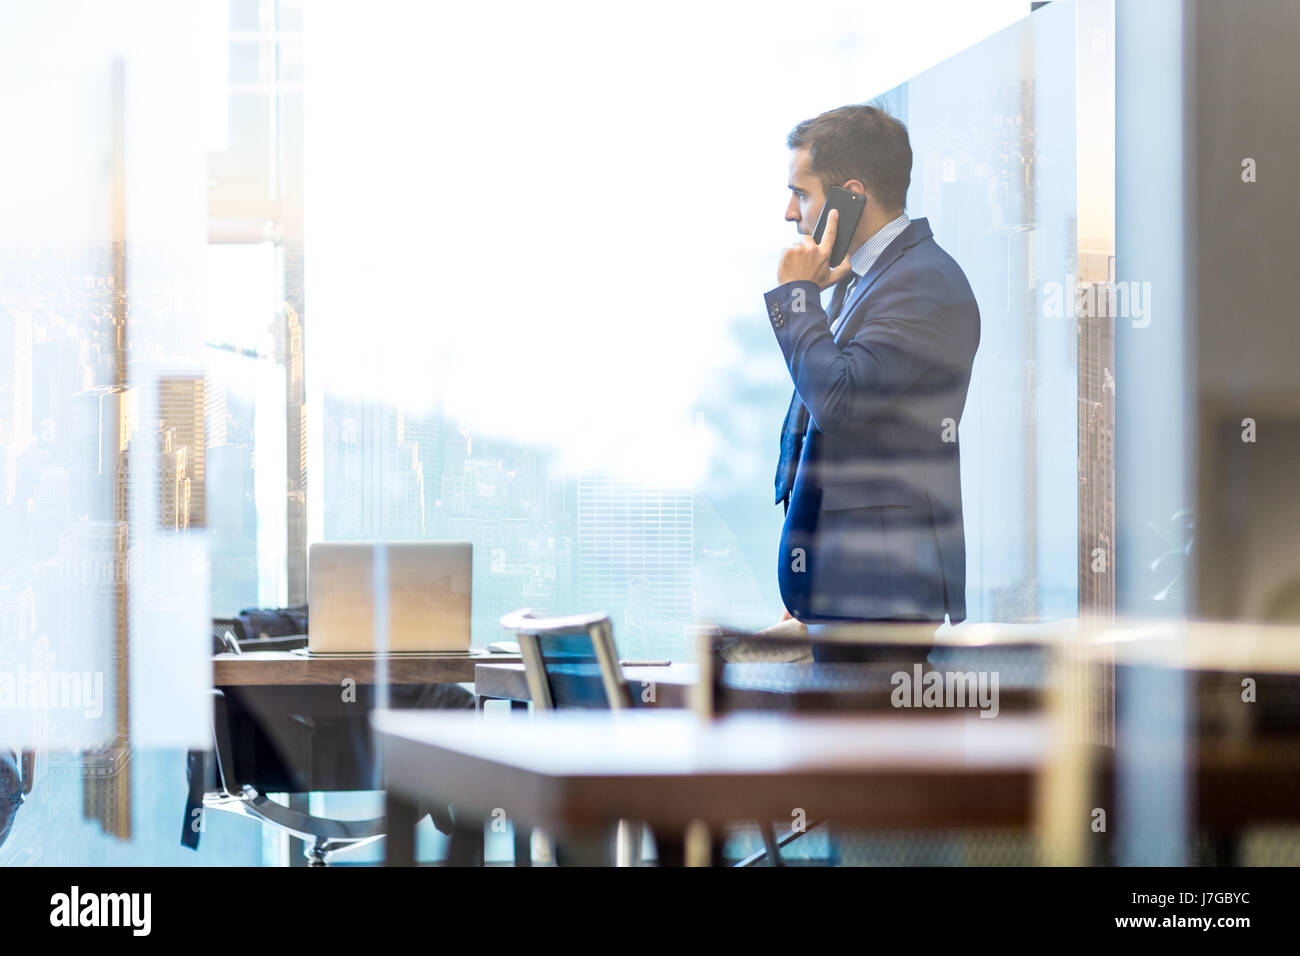 Businessman talking on a mobile phone while looking through window in NY - Stock Image